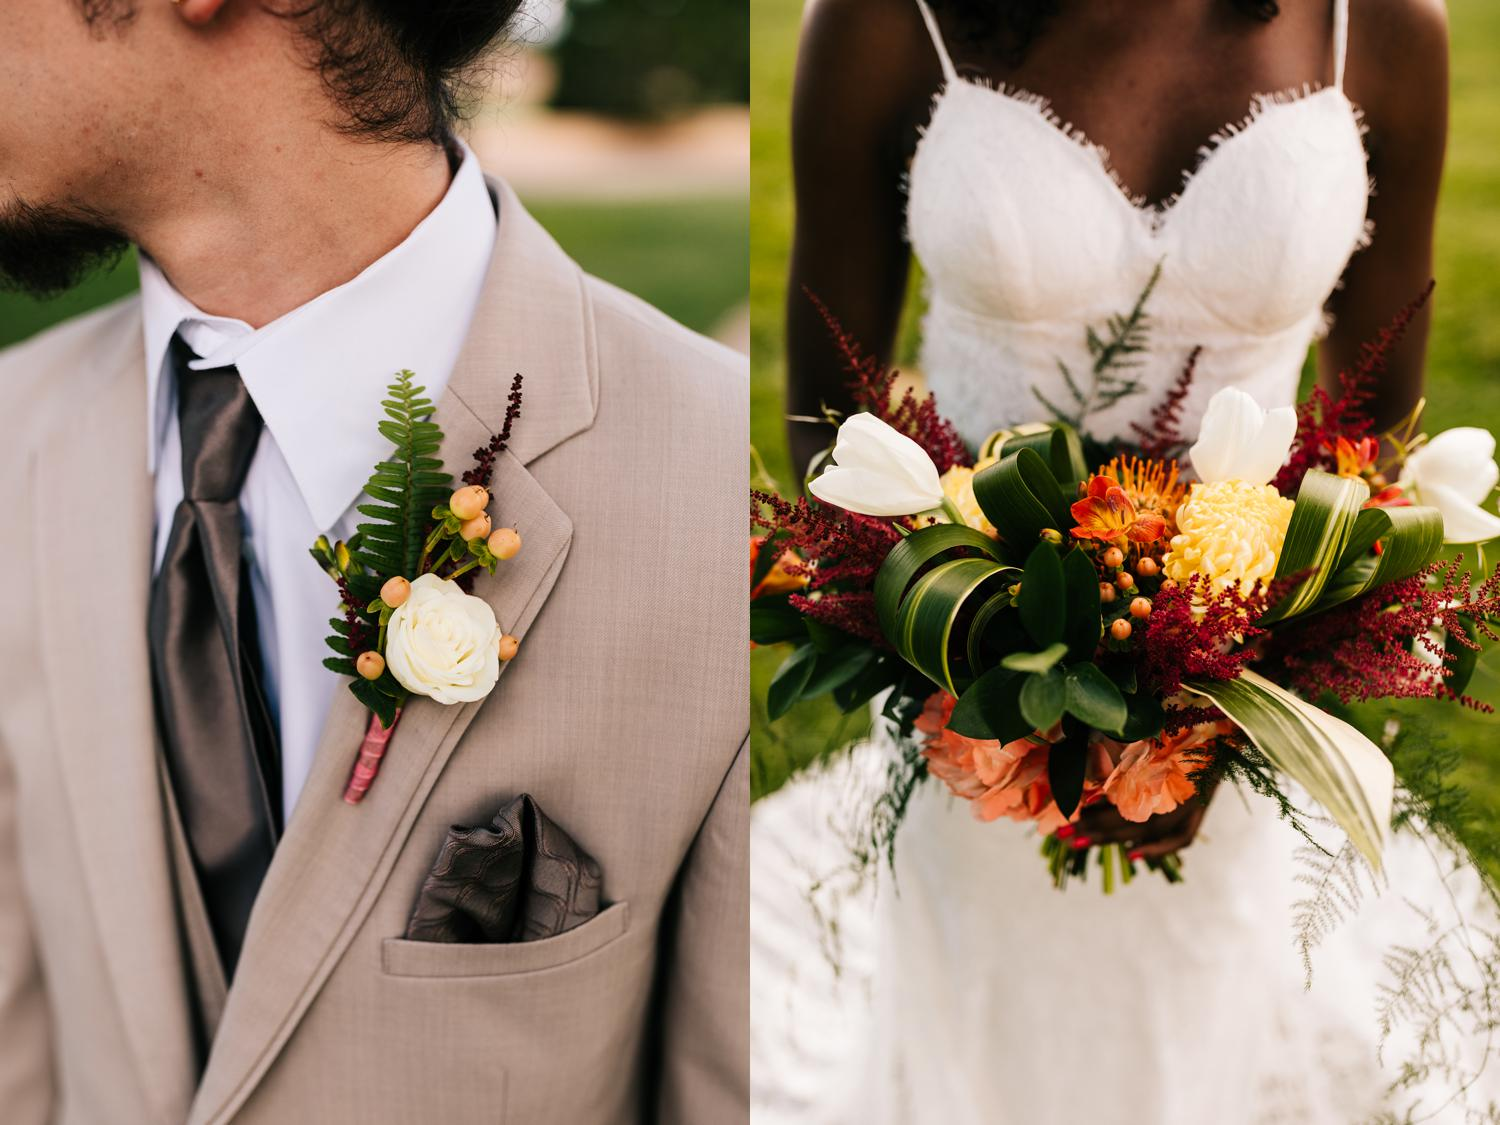 Tropical themed boutonniere and bouquet for tropical New Mexico wedding